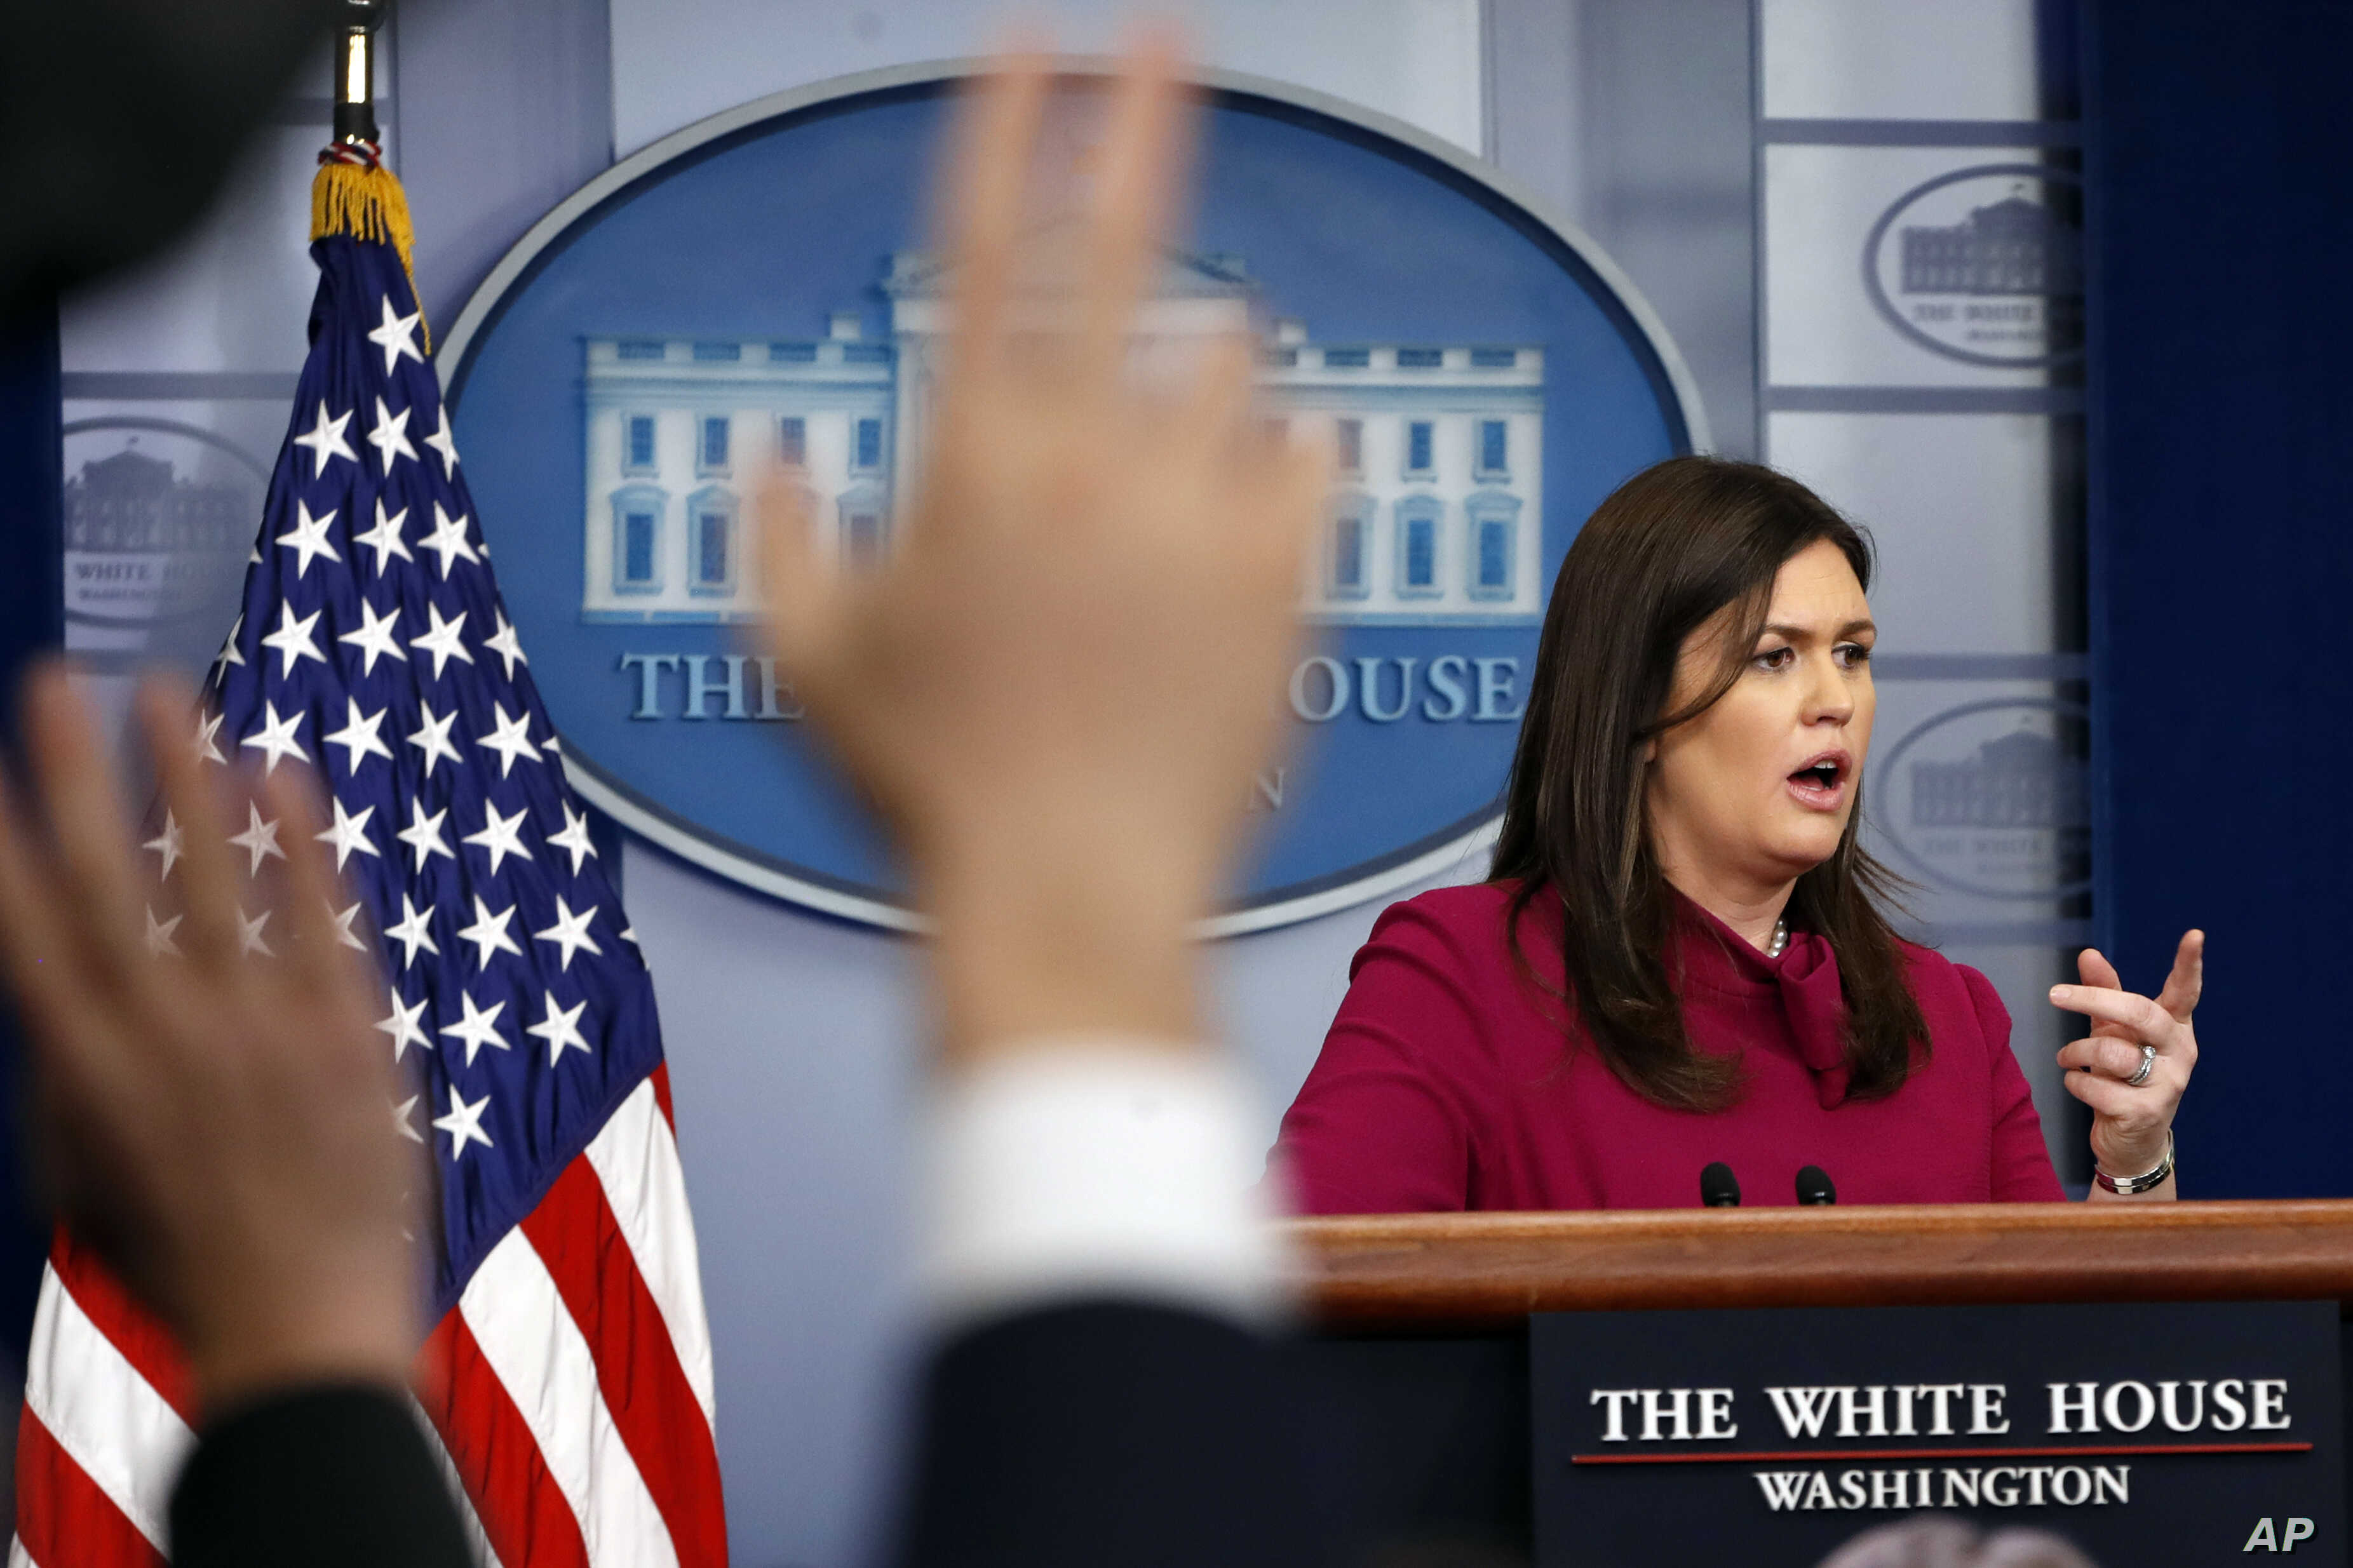 White House press secretary Sarah Huckabee Sanders answers a question as reporters raise their hands during the daily news briefing at the White House, Feb. 20, 2018, in Washington.